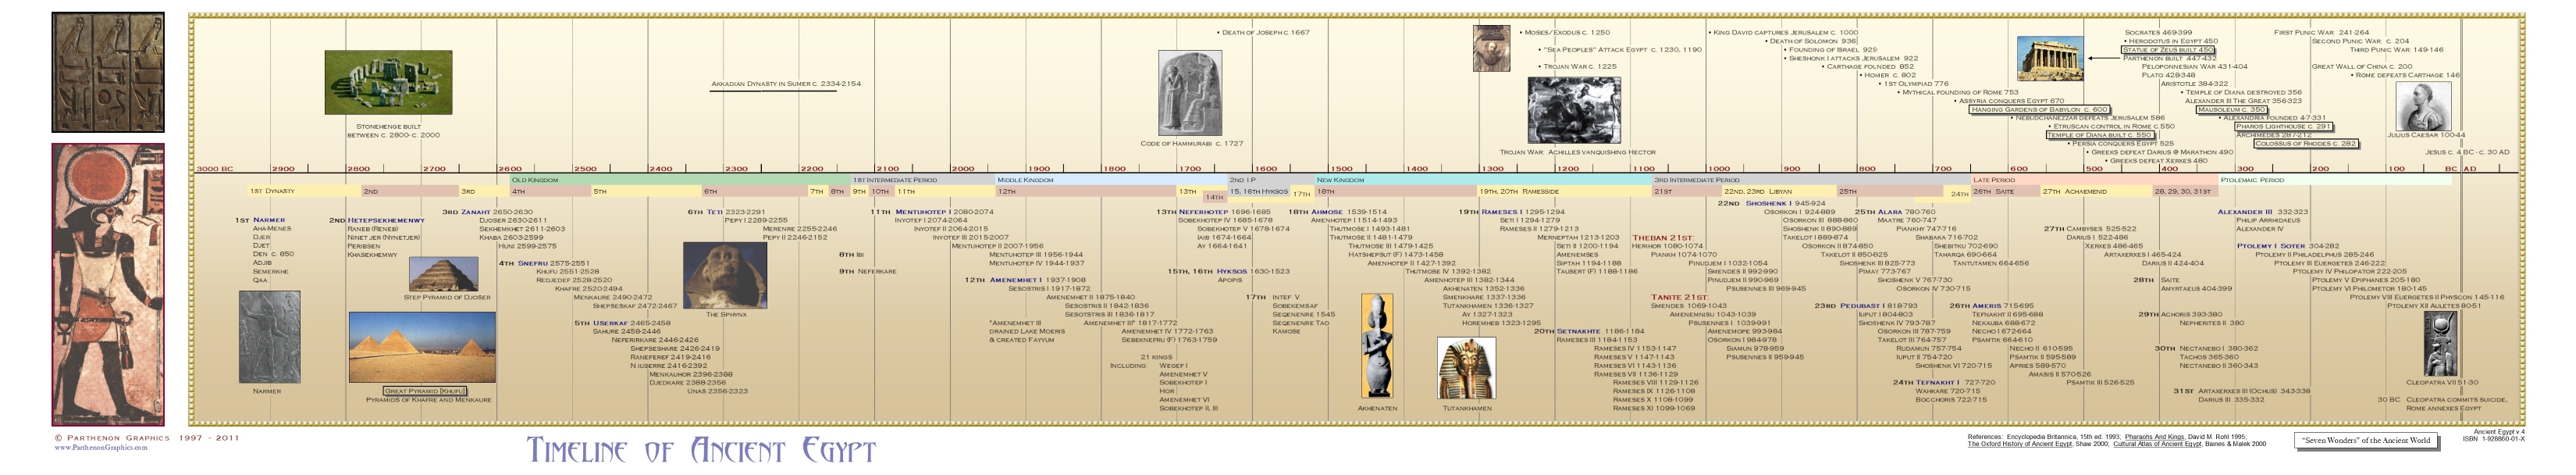 timeline of ancient egypt parthenon graphics history